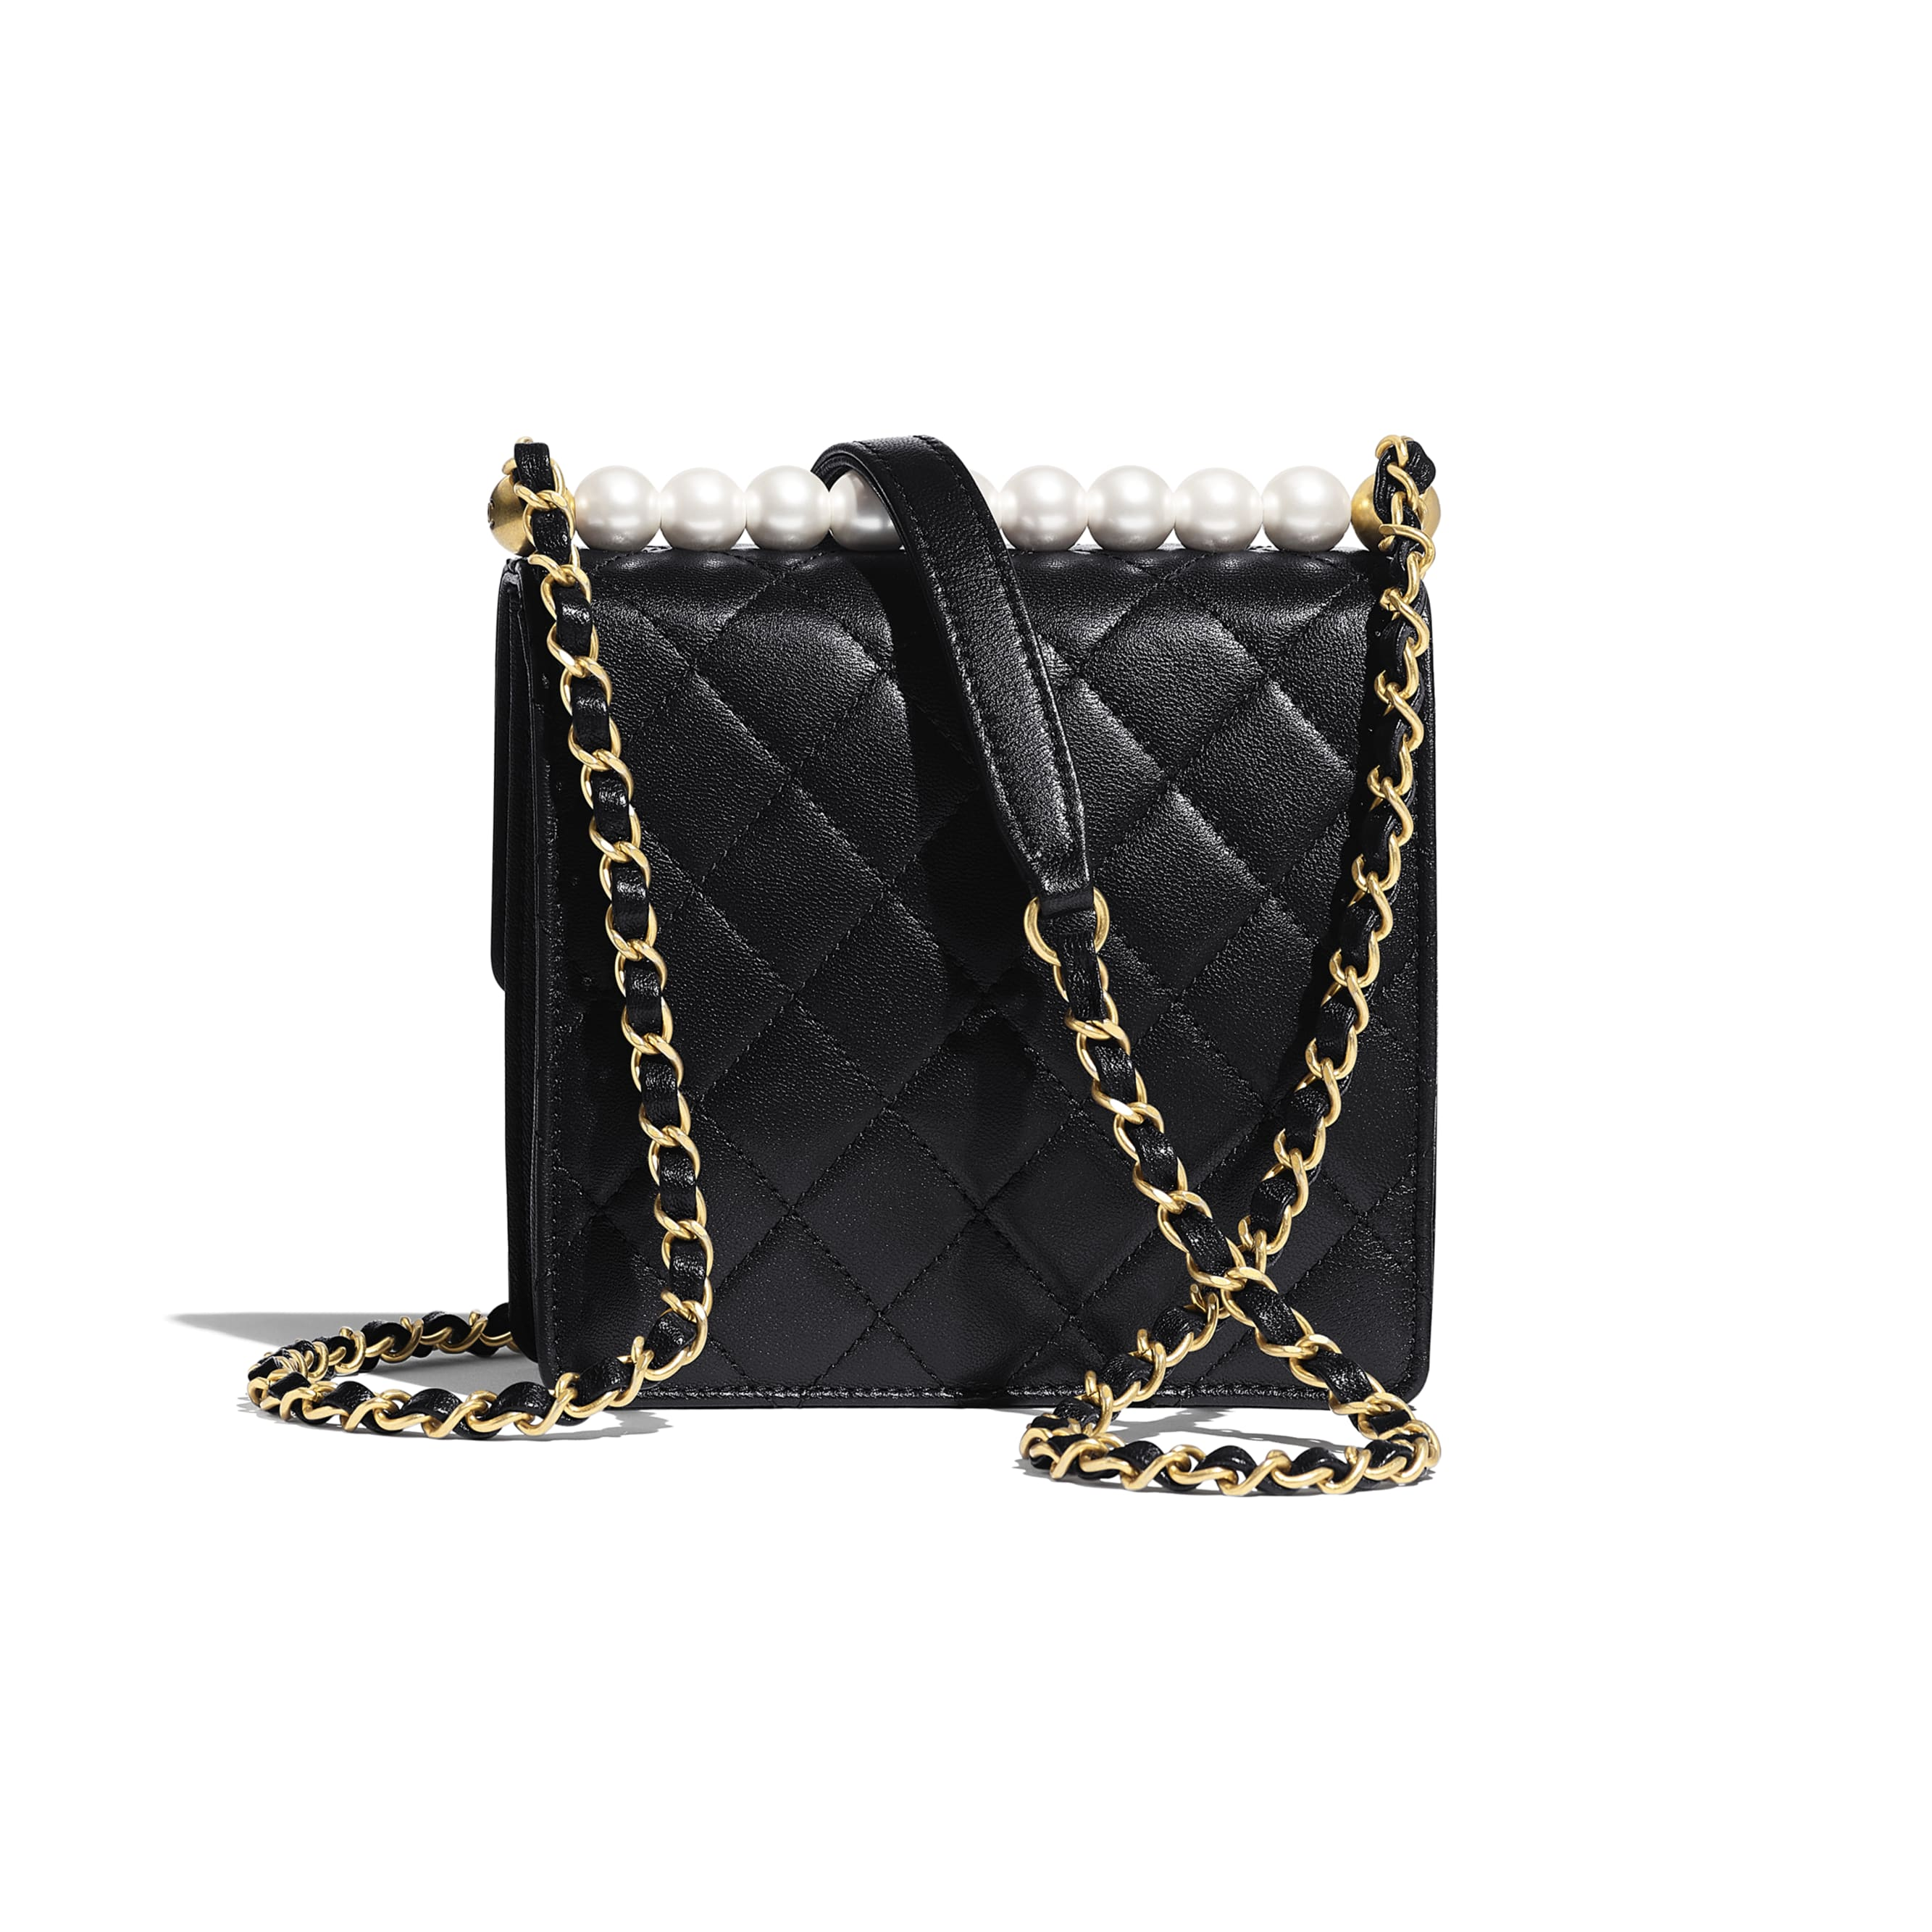 Flap Bag - Black - Goatskin, Imitation Pearls & Gold-Tone Metal - CHANEL - Alternative view - see standard sized version